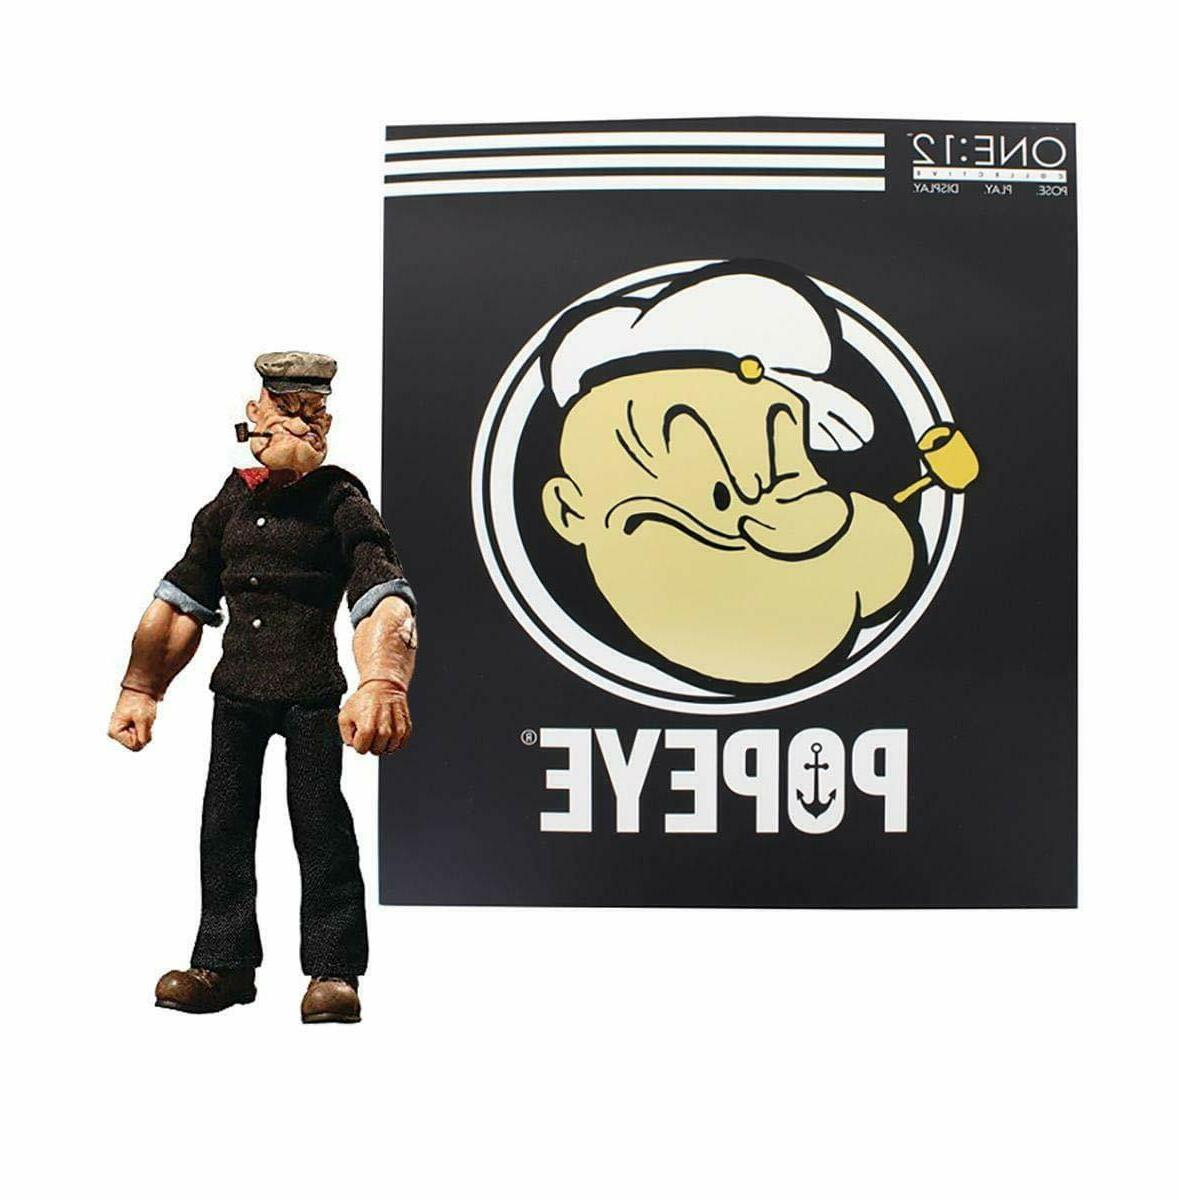 one 12 collective popeye deluxe action figure